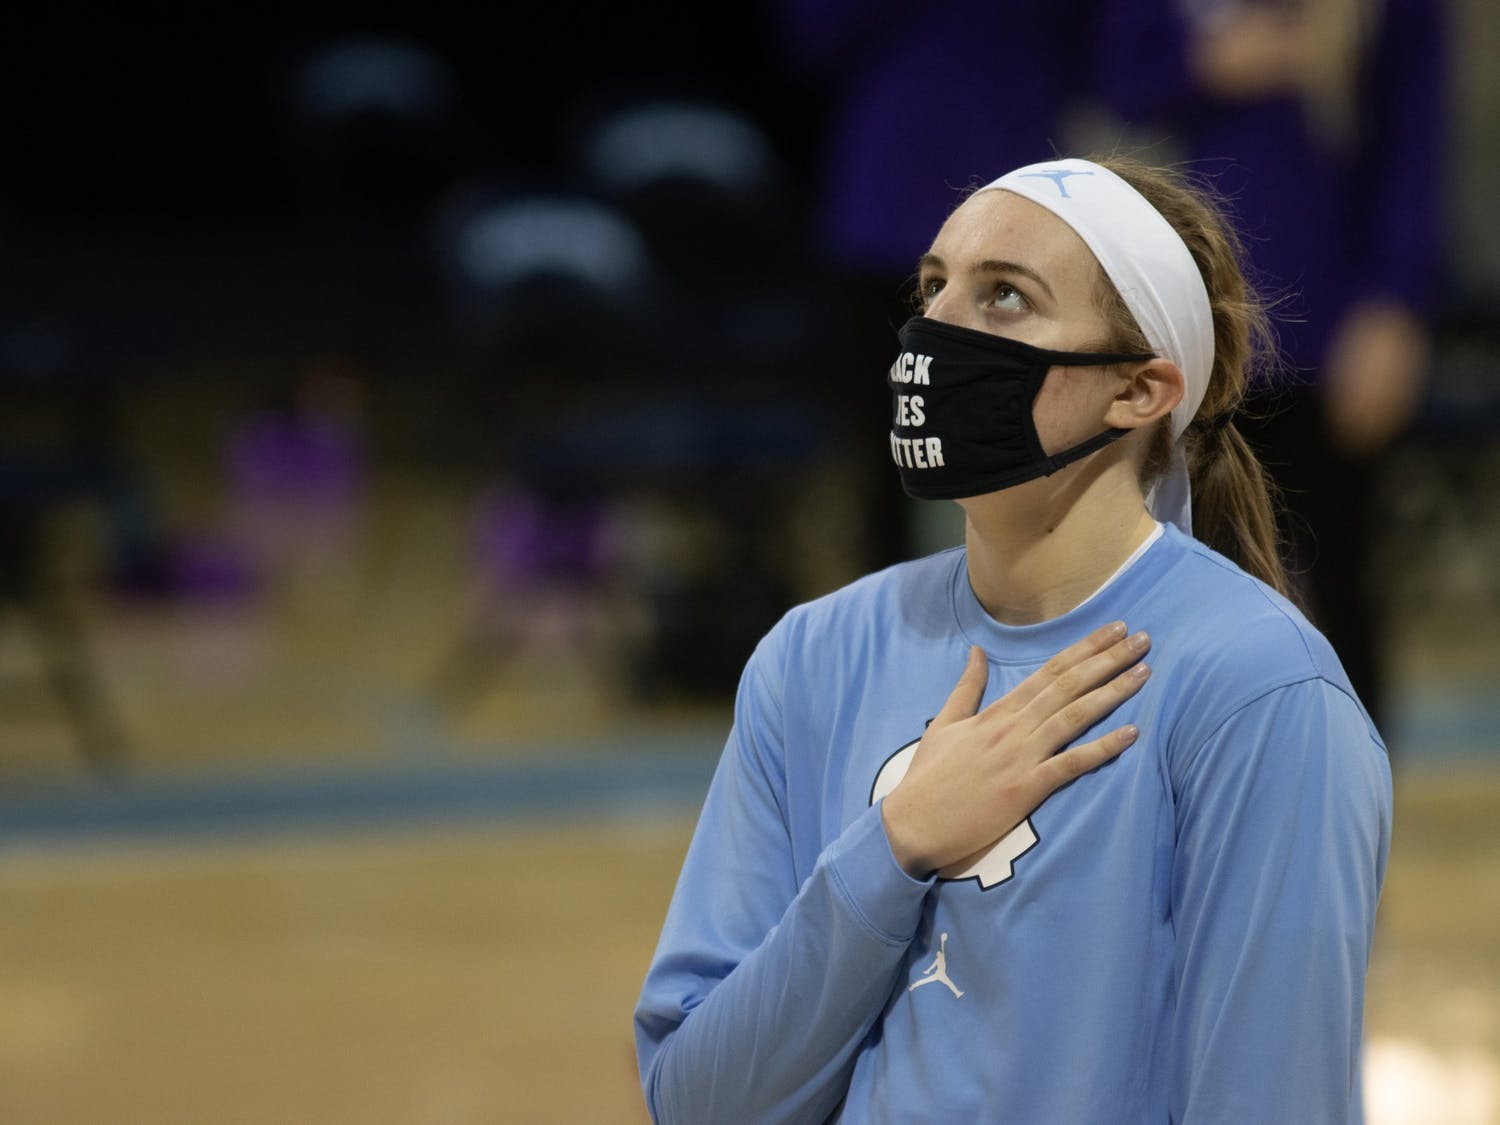 UNC first year forward Alyssa Utsby (1) places her hand over her heart during the national anthem prior to Carolina's 95-70 victory over High Point, November 29, 2020.